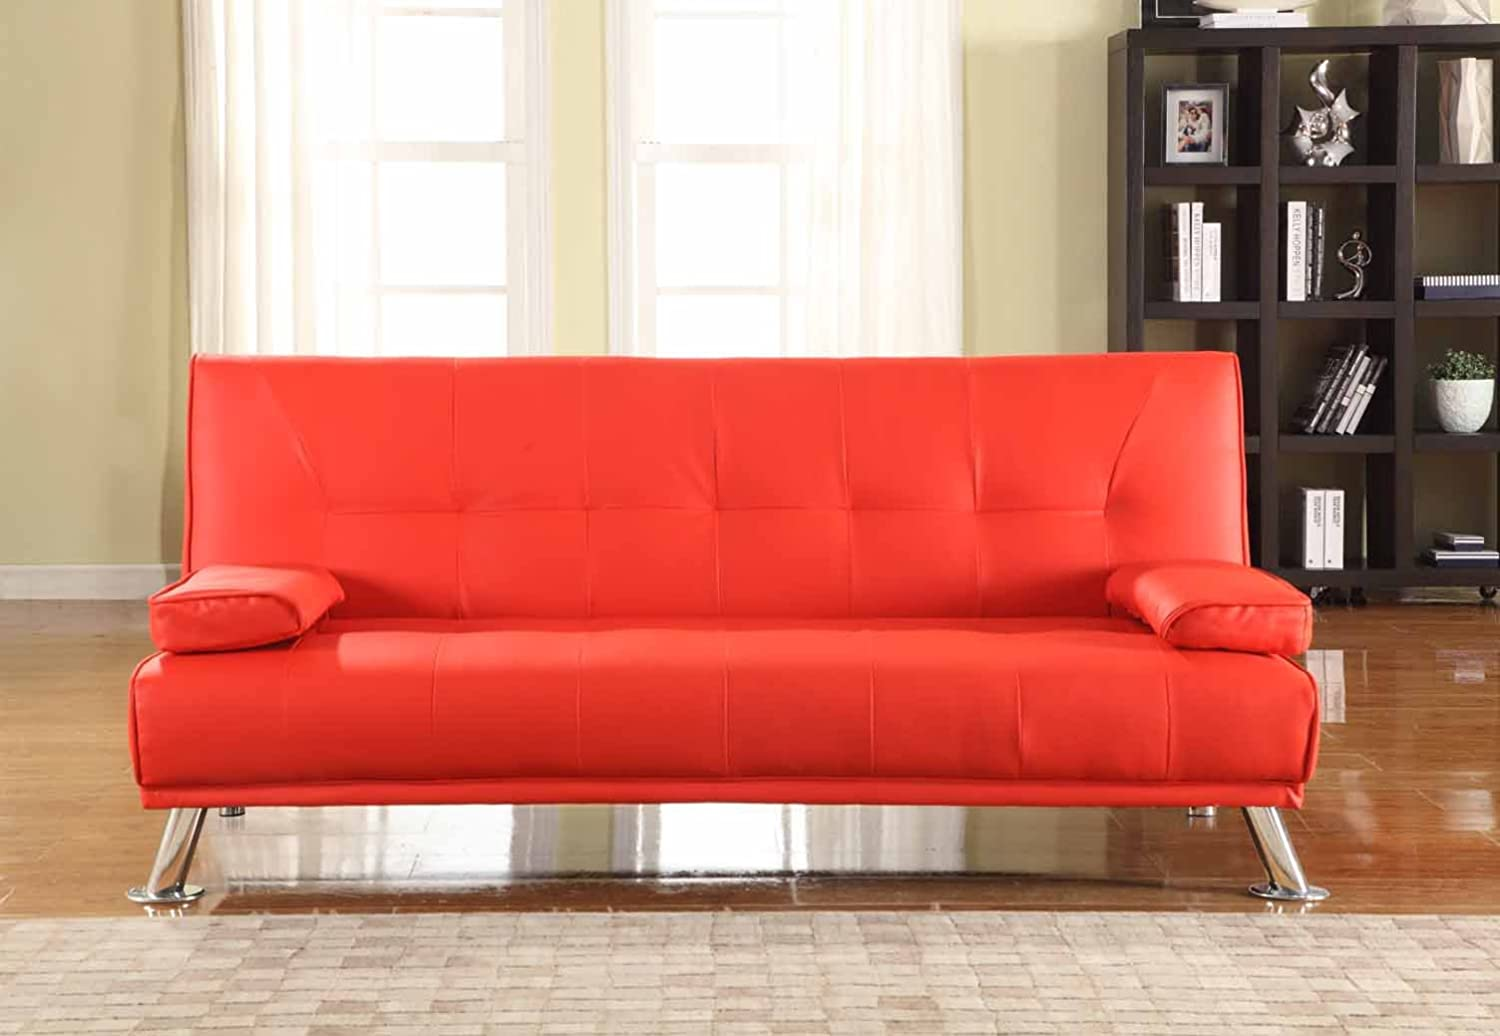 loveseat leather futon red sofas livingroom cherry cushion black sectional sectionals set and sleeper hillsborough sofa